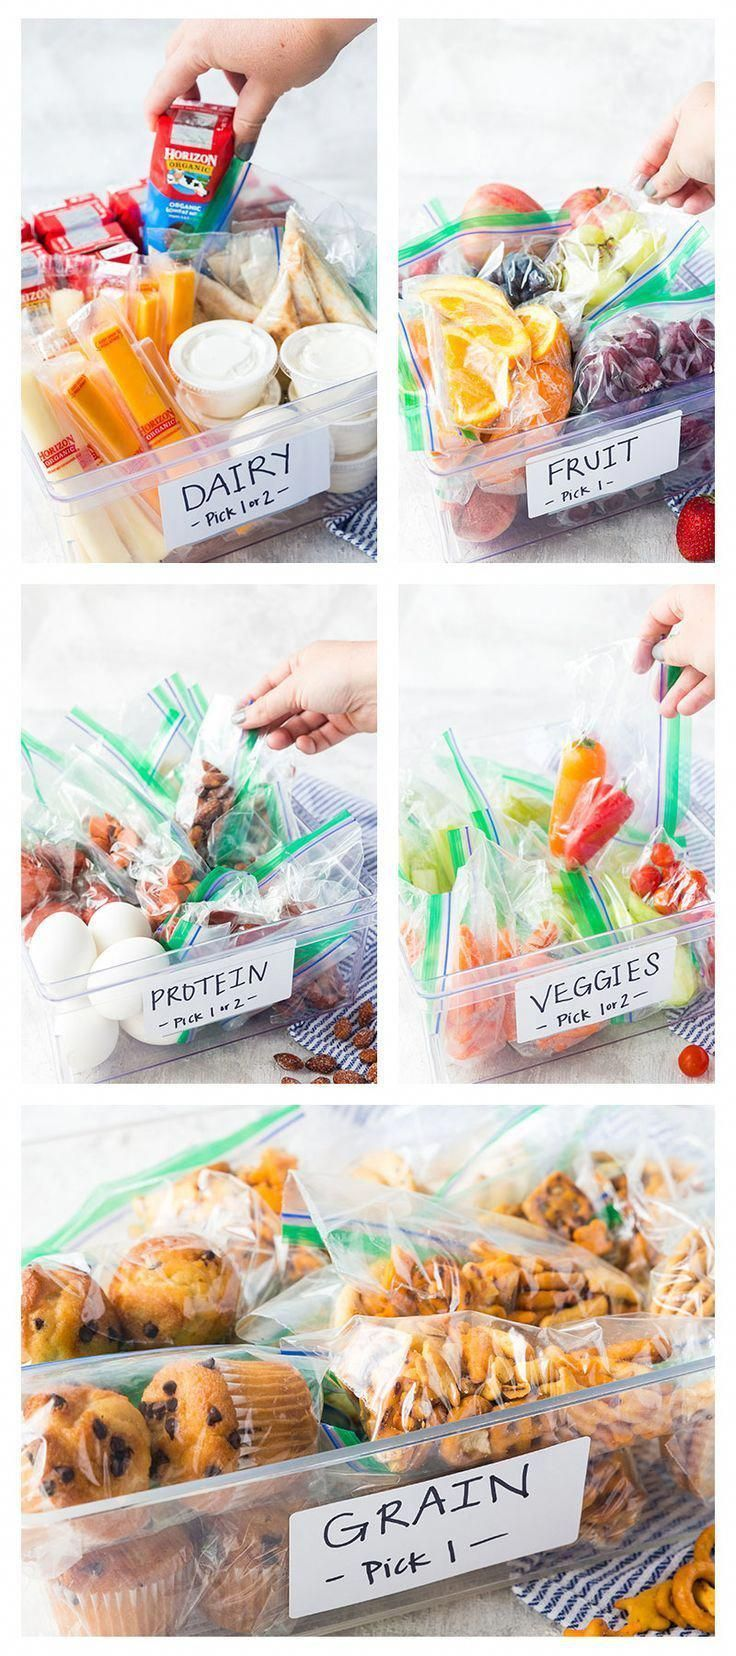 Healthy lunches for kids Kids lunch for school Lunch meal prep Kids lunch Lu Healthy lunches for kids Kids lunch for school Lunch meal prep Kids lunch Lunch snacks School